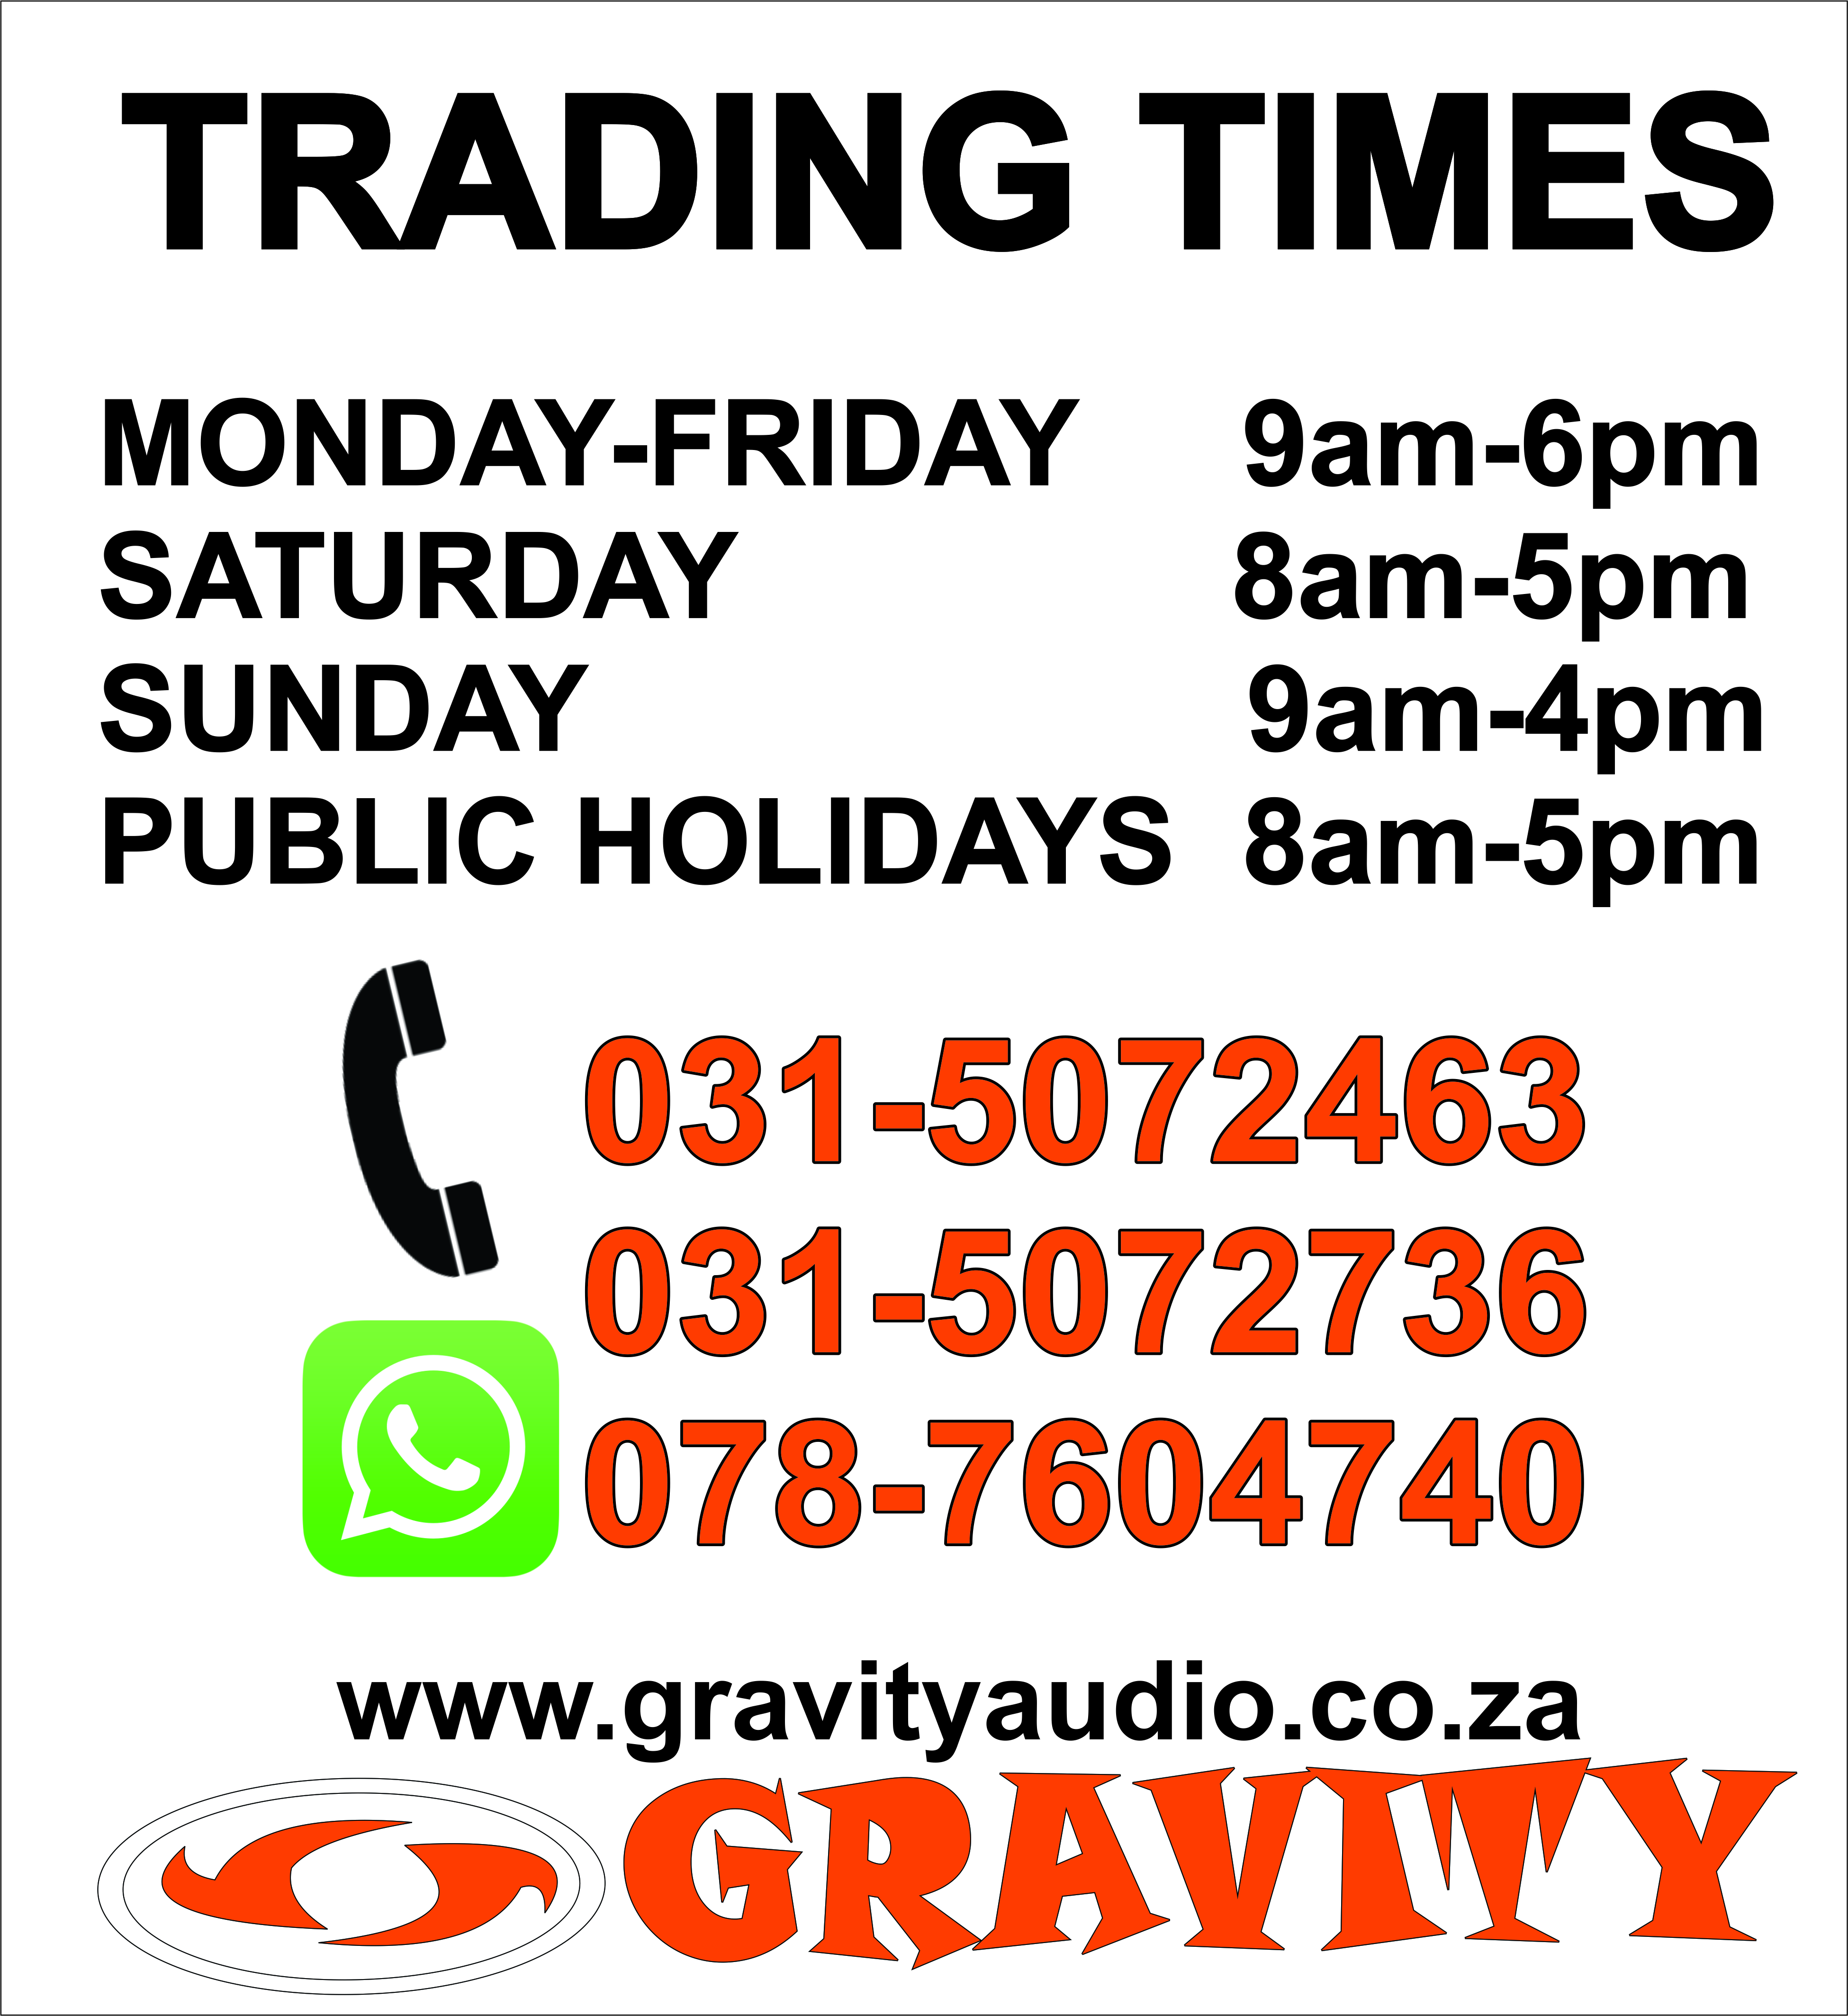 TRADING TIMES AT GRAVITY REPAIR CENTRE GRAVITY DJ STORE 0787604740